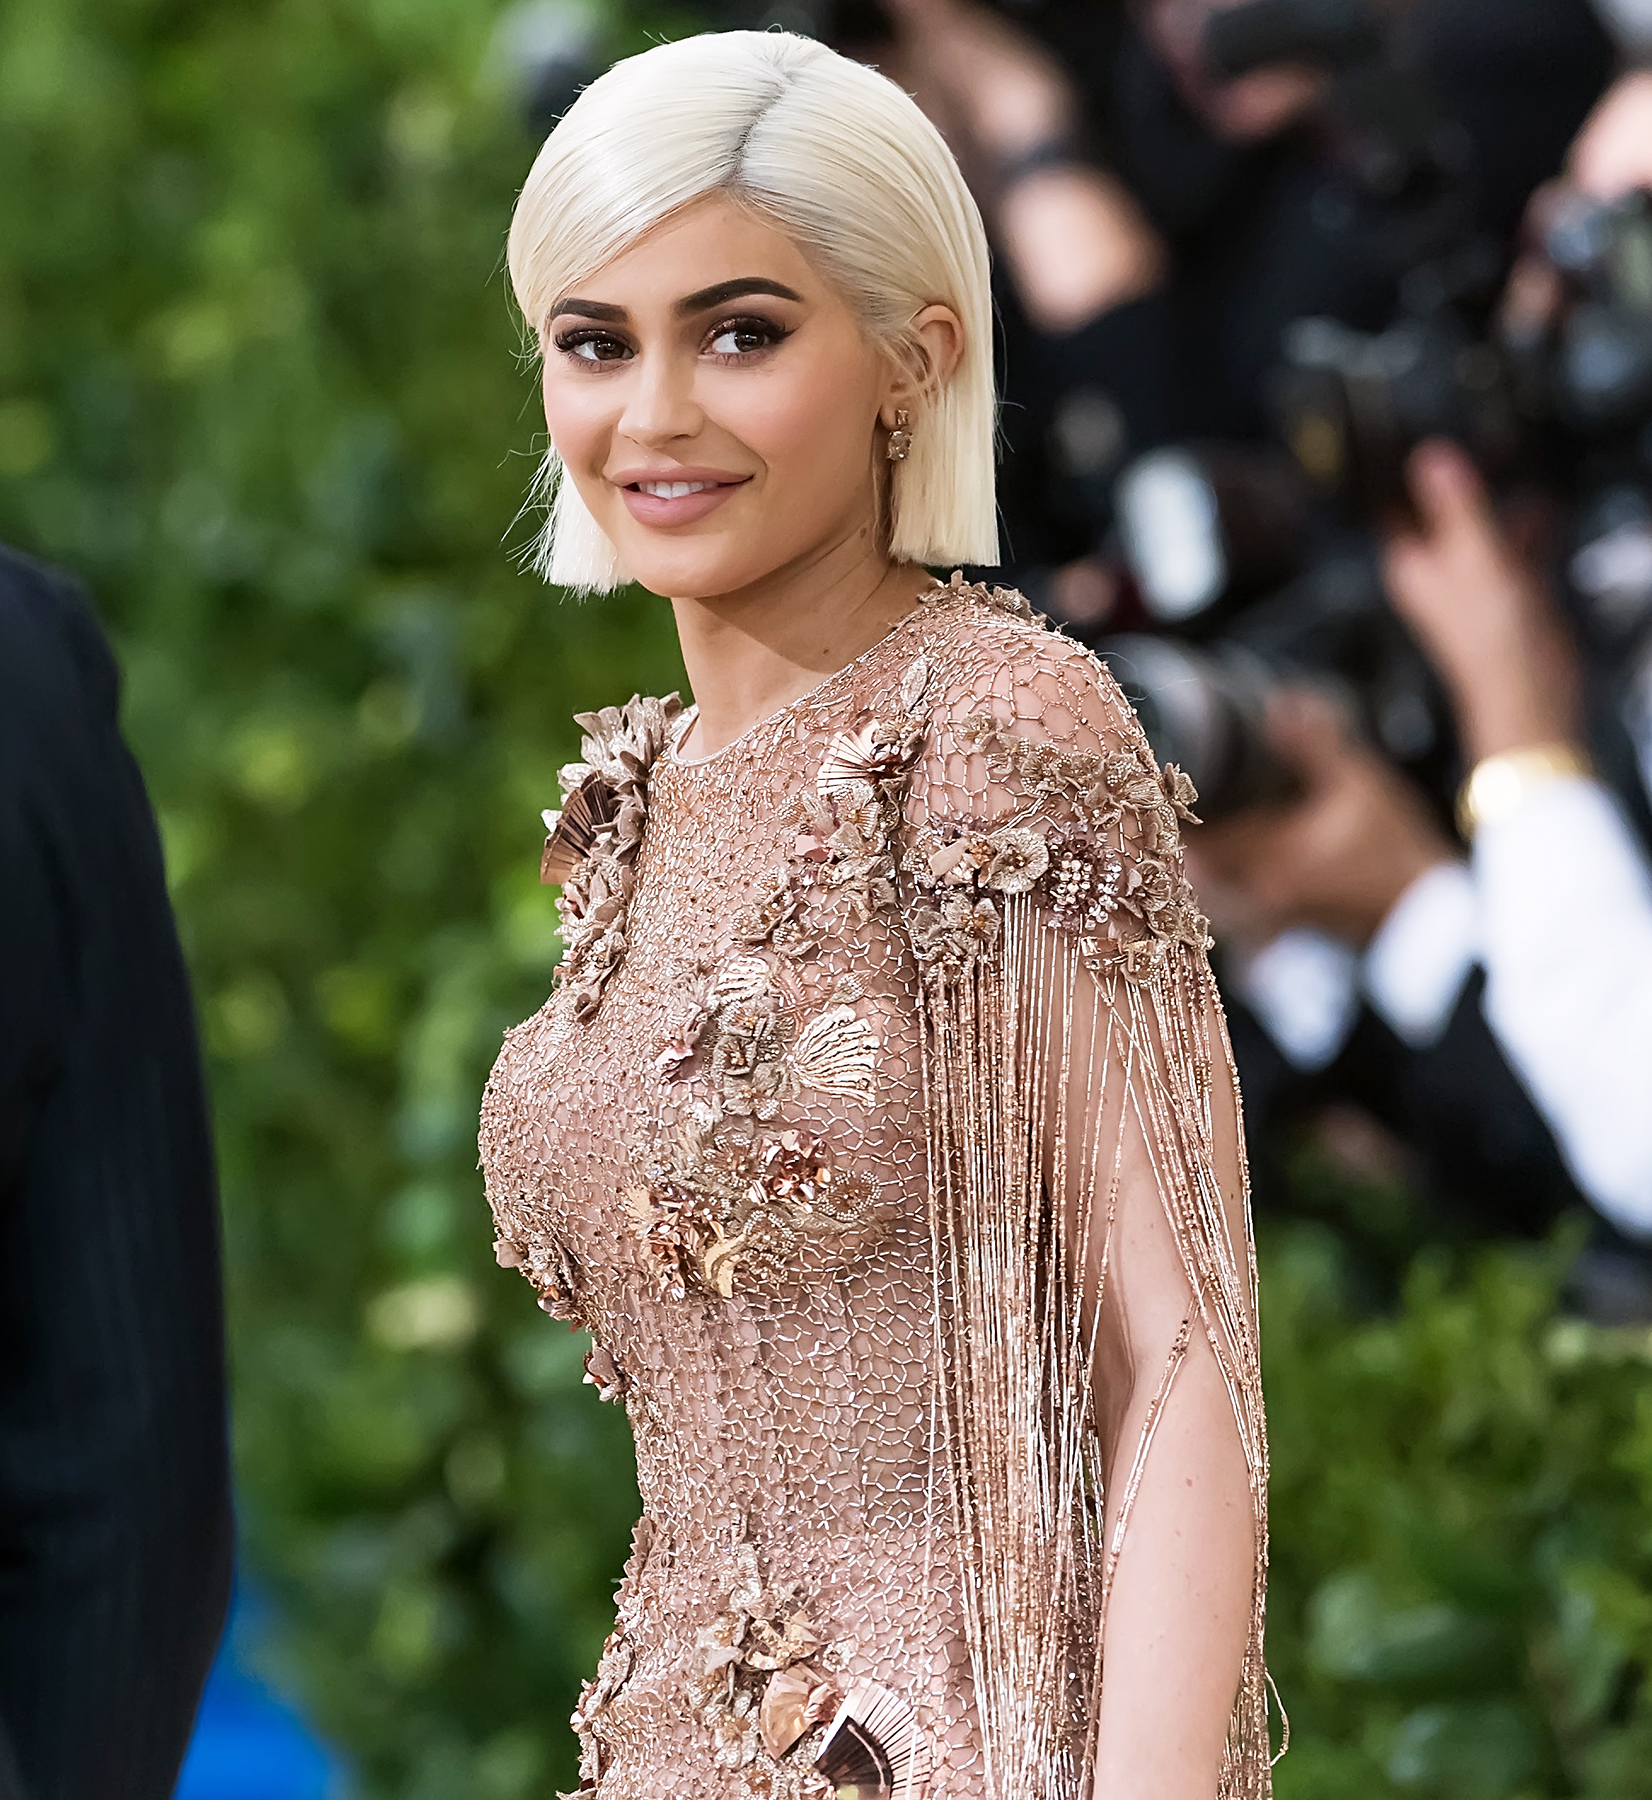 Kylie Jenner Is Reportedly in Labor and Giving Birth Right Now